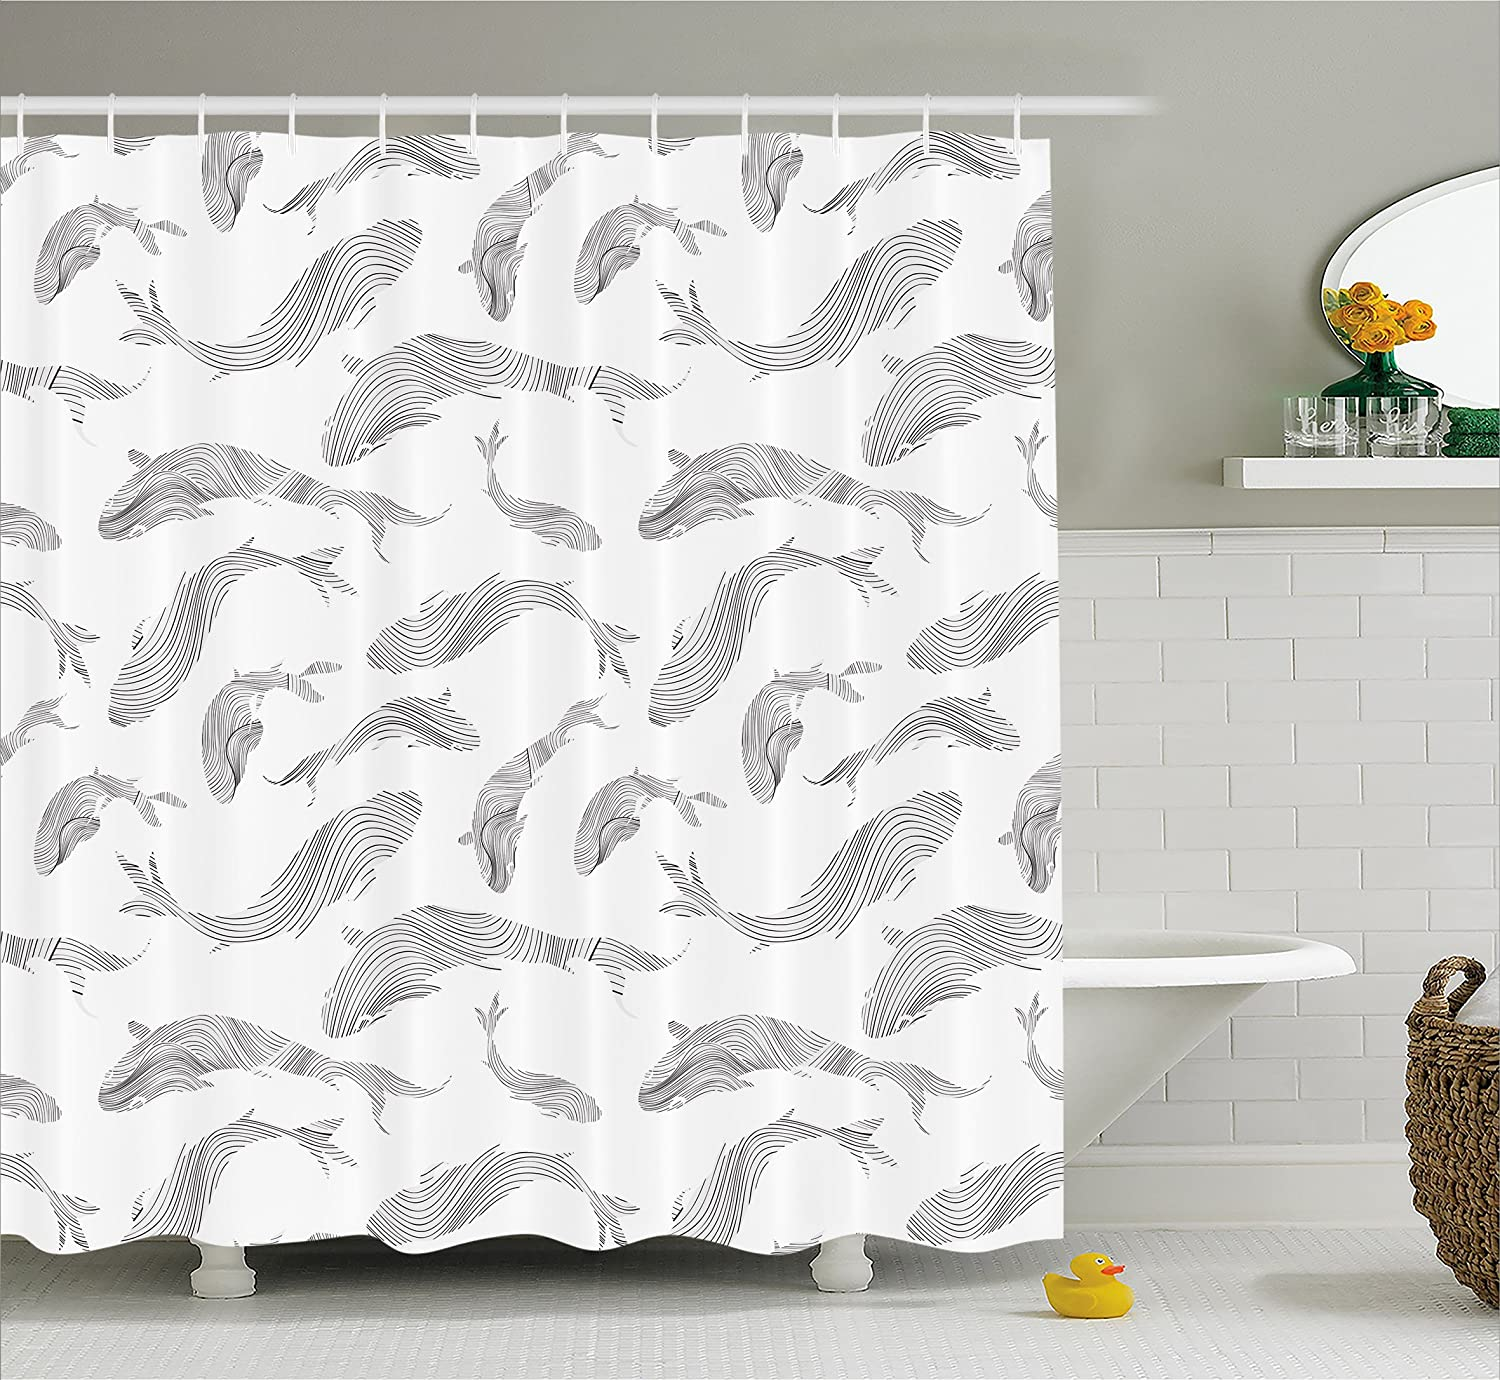 Amazon.com: Unicorn Home and Kids Decor Shower Curtain by Ambesonne ...